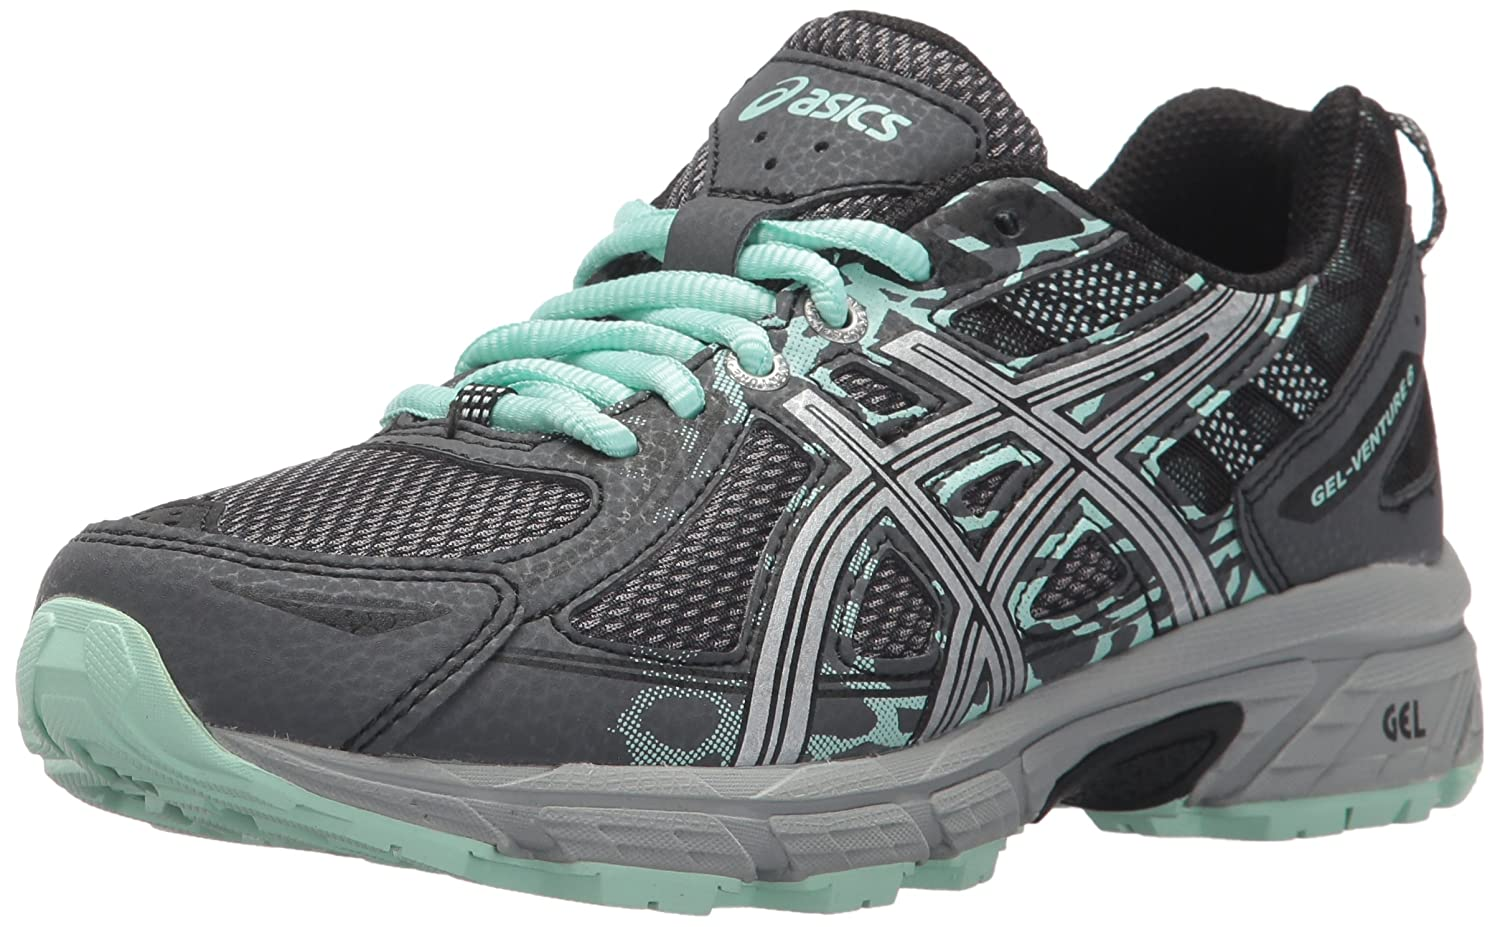 ASICS Mens Gel-Venture 6 Low Top Lace Up Running Sneaker B072F3LJPZ Castlerock/Silver/Honeydew 1 Women's Size 5, Medium Width 1 Women's Size 5, Medium Width|Castlerock/Silver/Honeydew